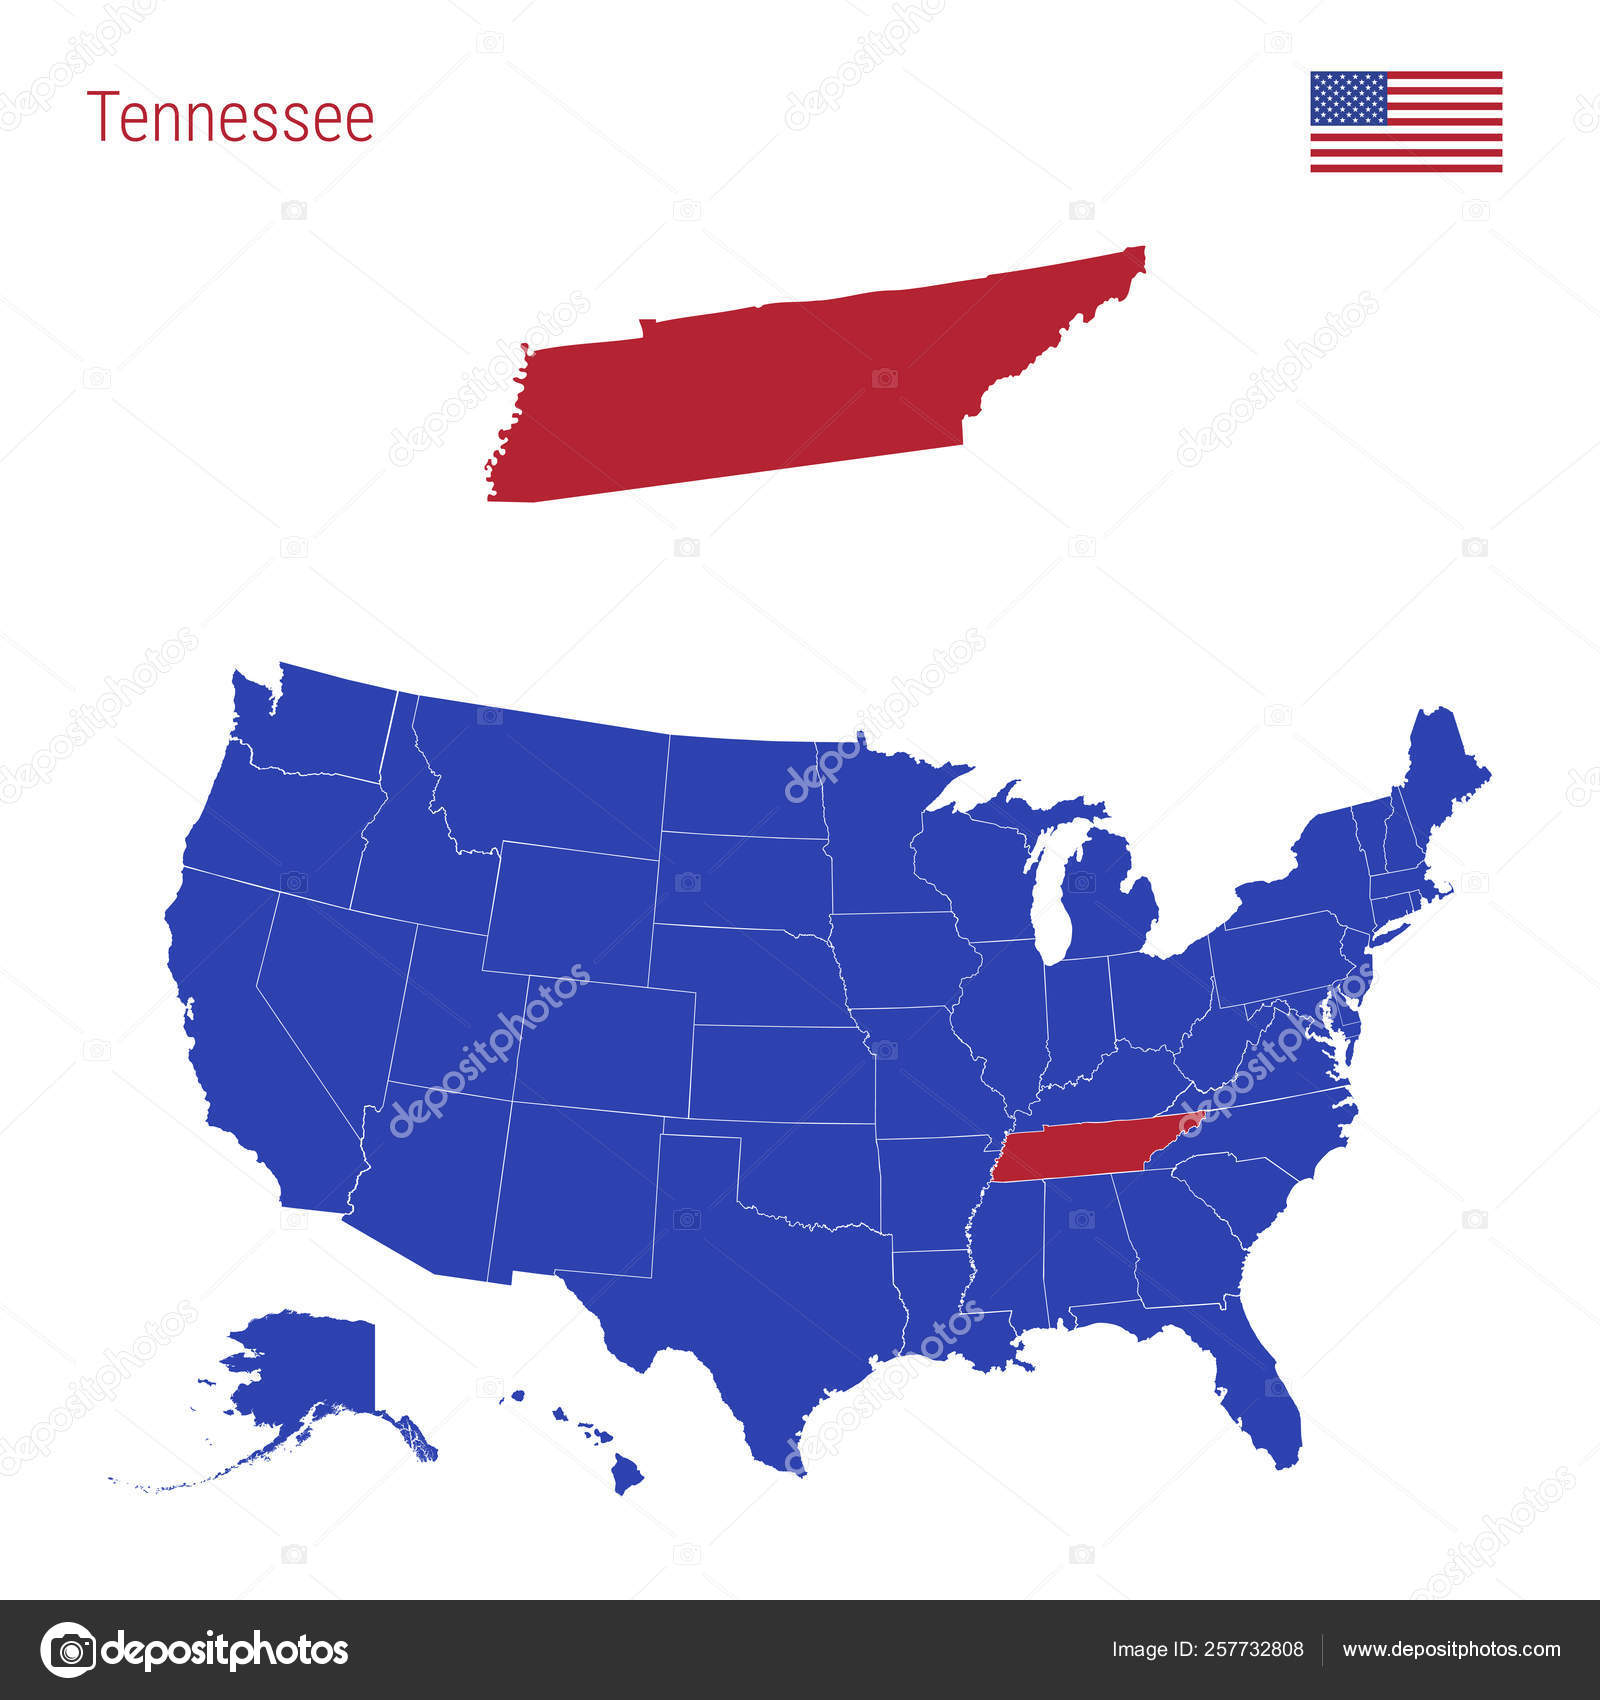 Covering an area of 109,247 sq. The State Of Tennessee Is Highlighted In Red Vector Map Of The United States Divided Into Separate States Stock Vector Image By C Ivanburchak 257732808